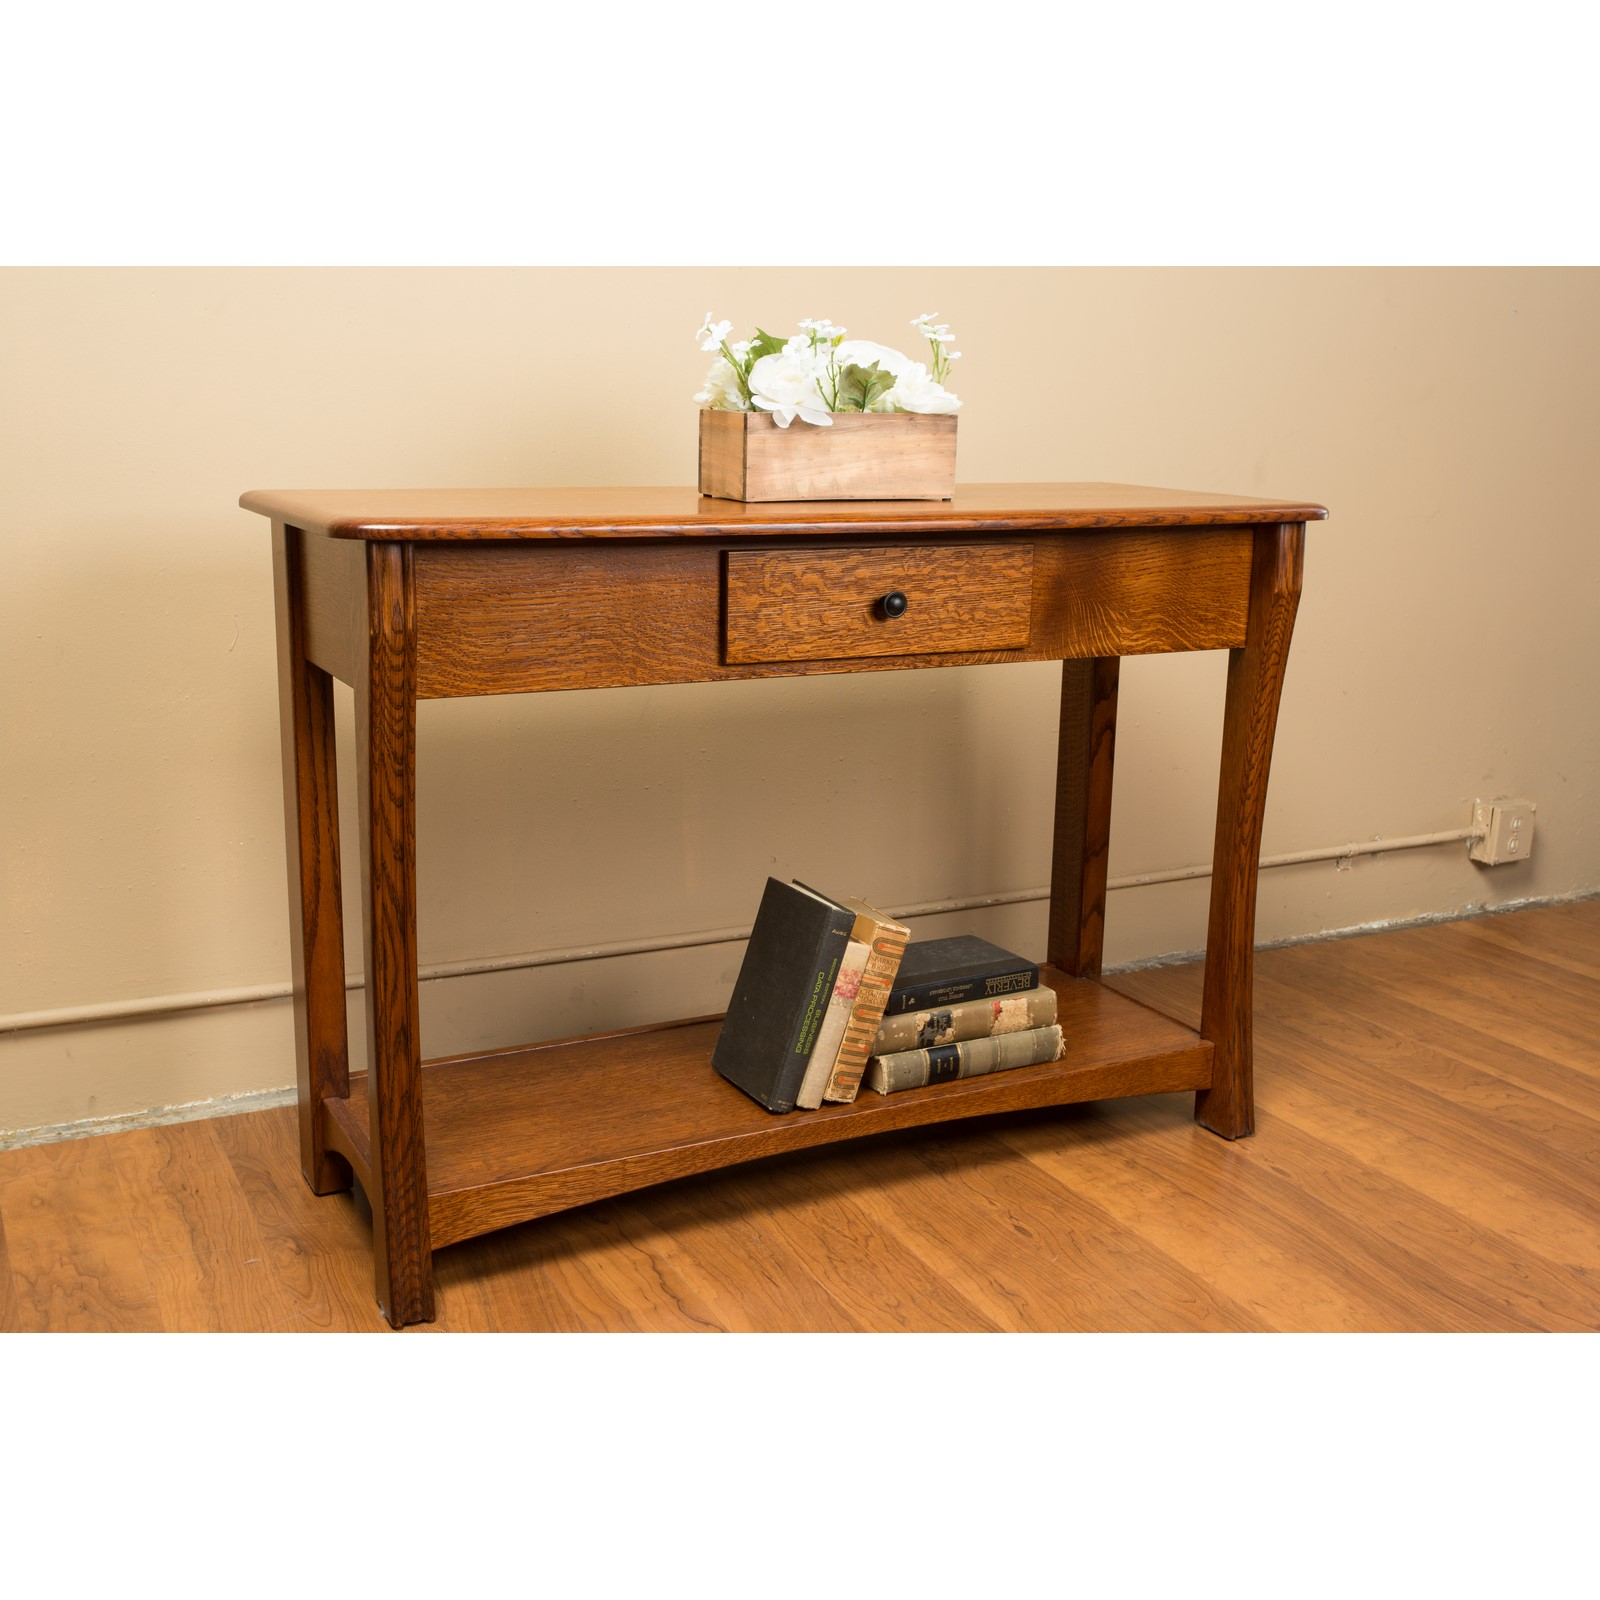 Kohler Woodcraft 45 Master Sofa Table 2